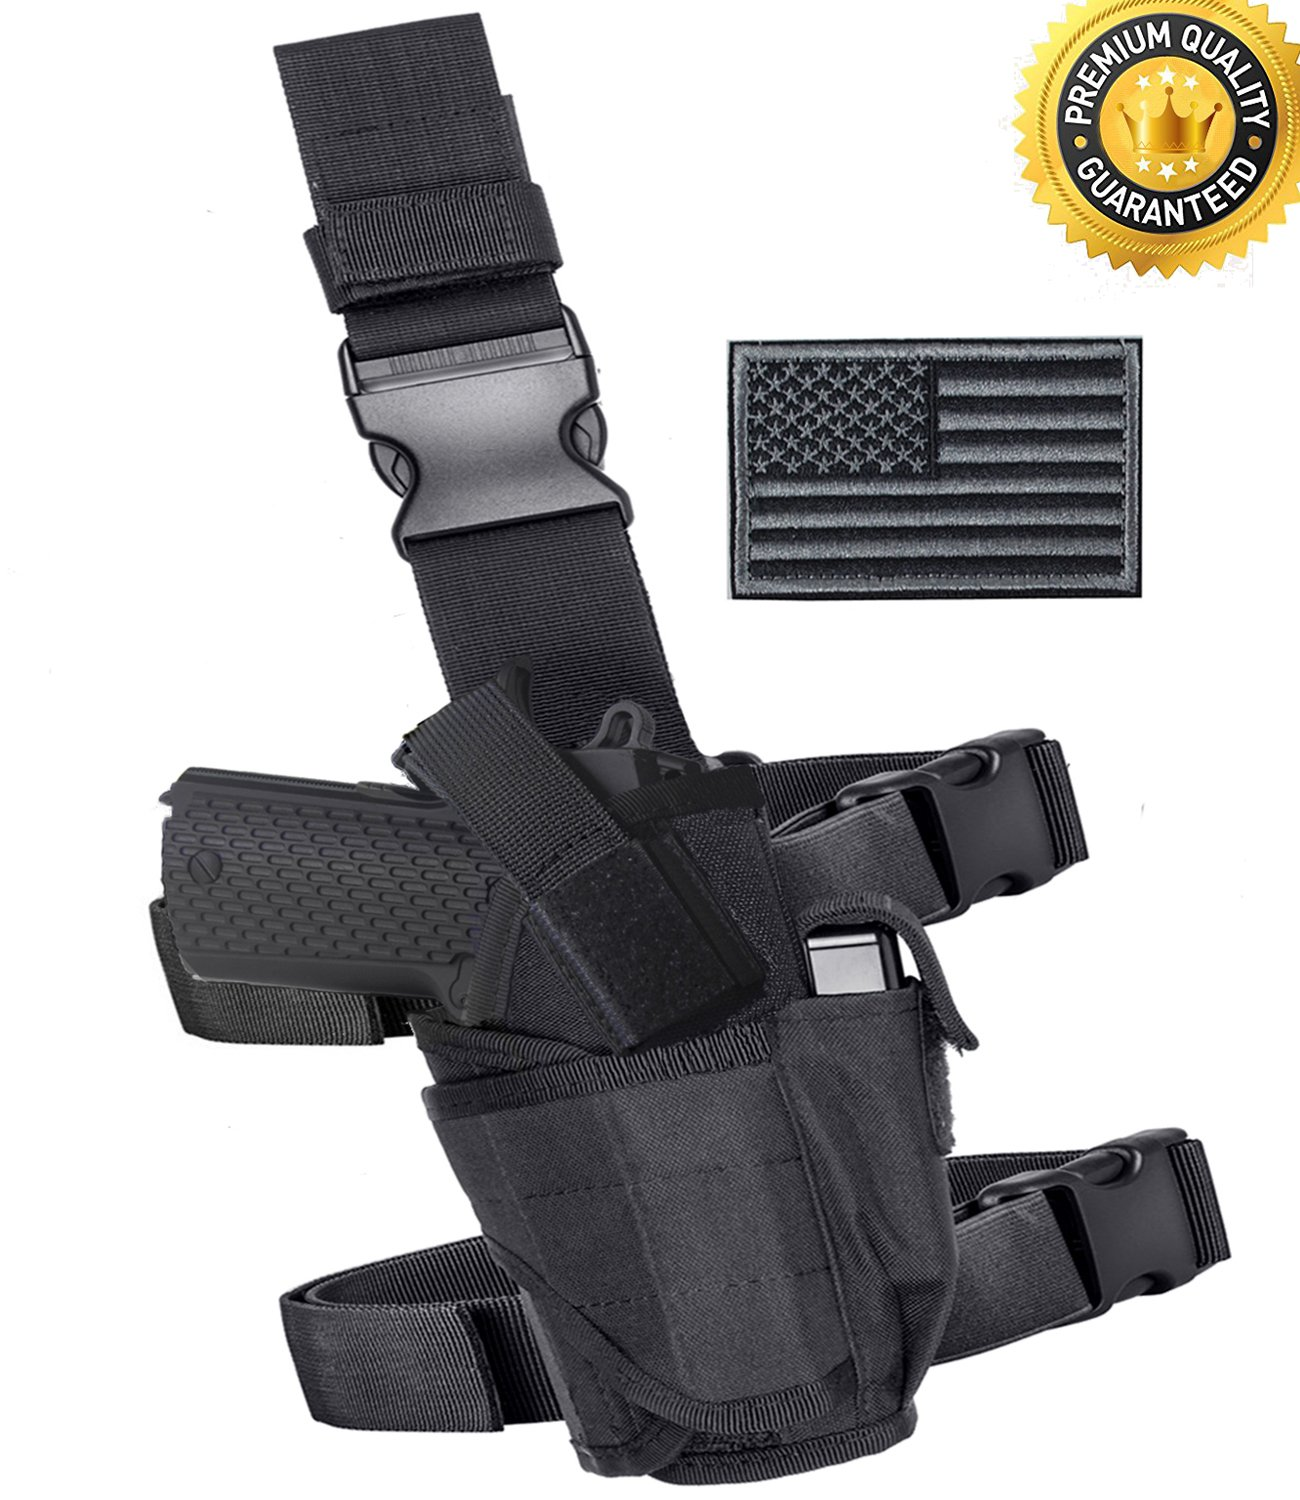 Carlebben Drop Leg Holster Molle Airsoft Holster Thigh Pistol Gun Holster Tactical Adjustable Right Handed (Black) by Carlebben